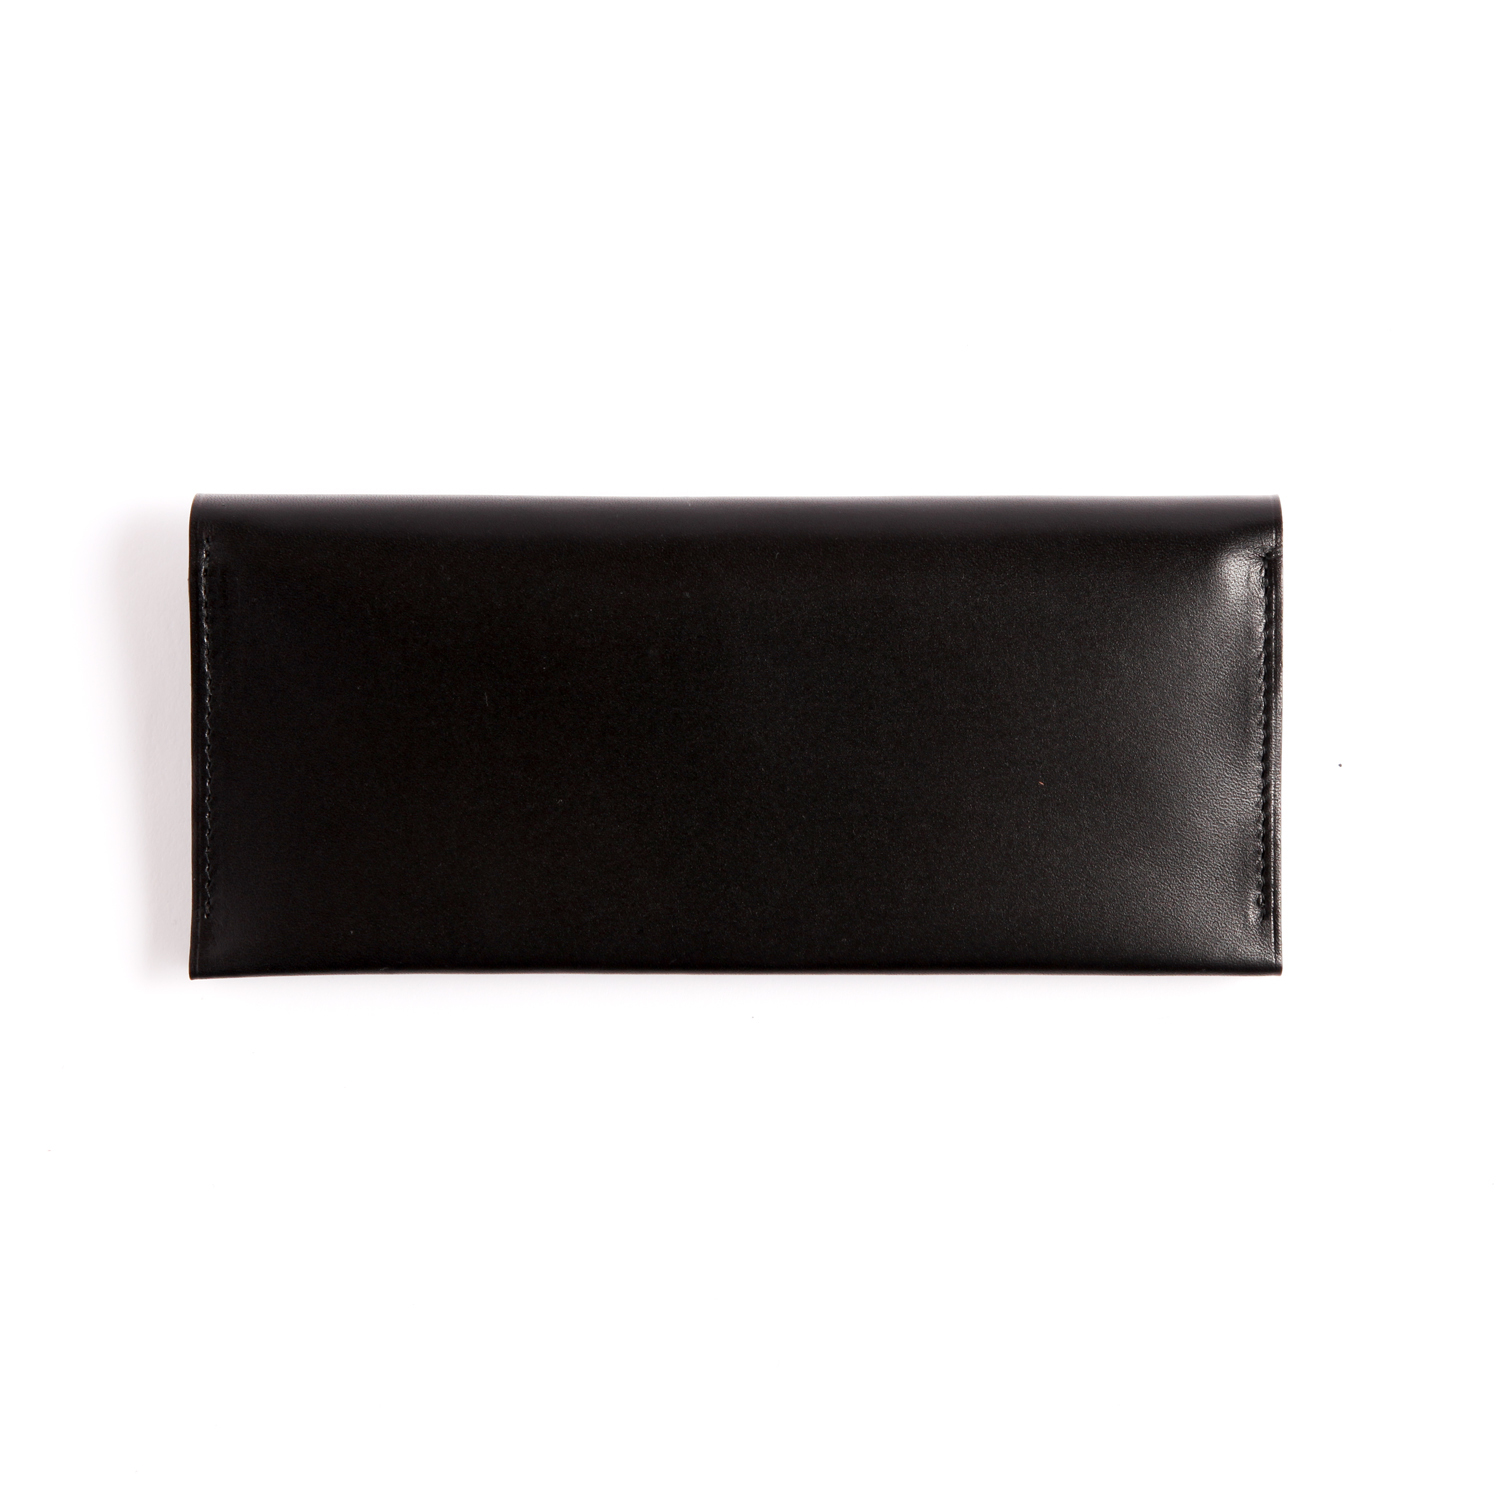 Postalco/Long Card & Coin Wallet/Black